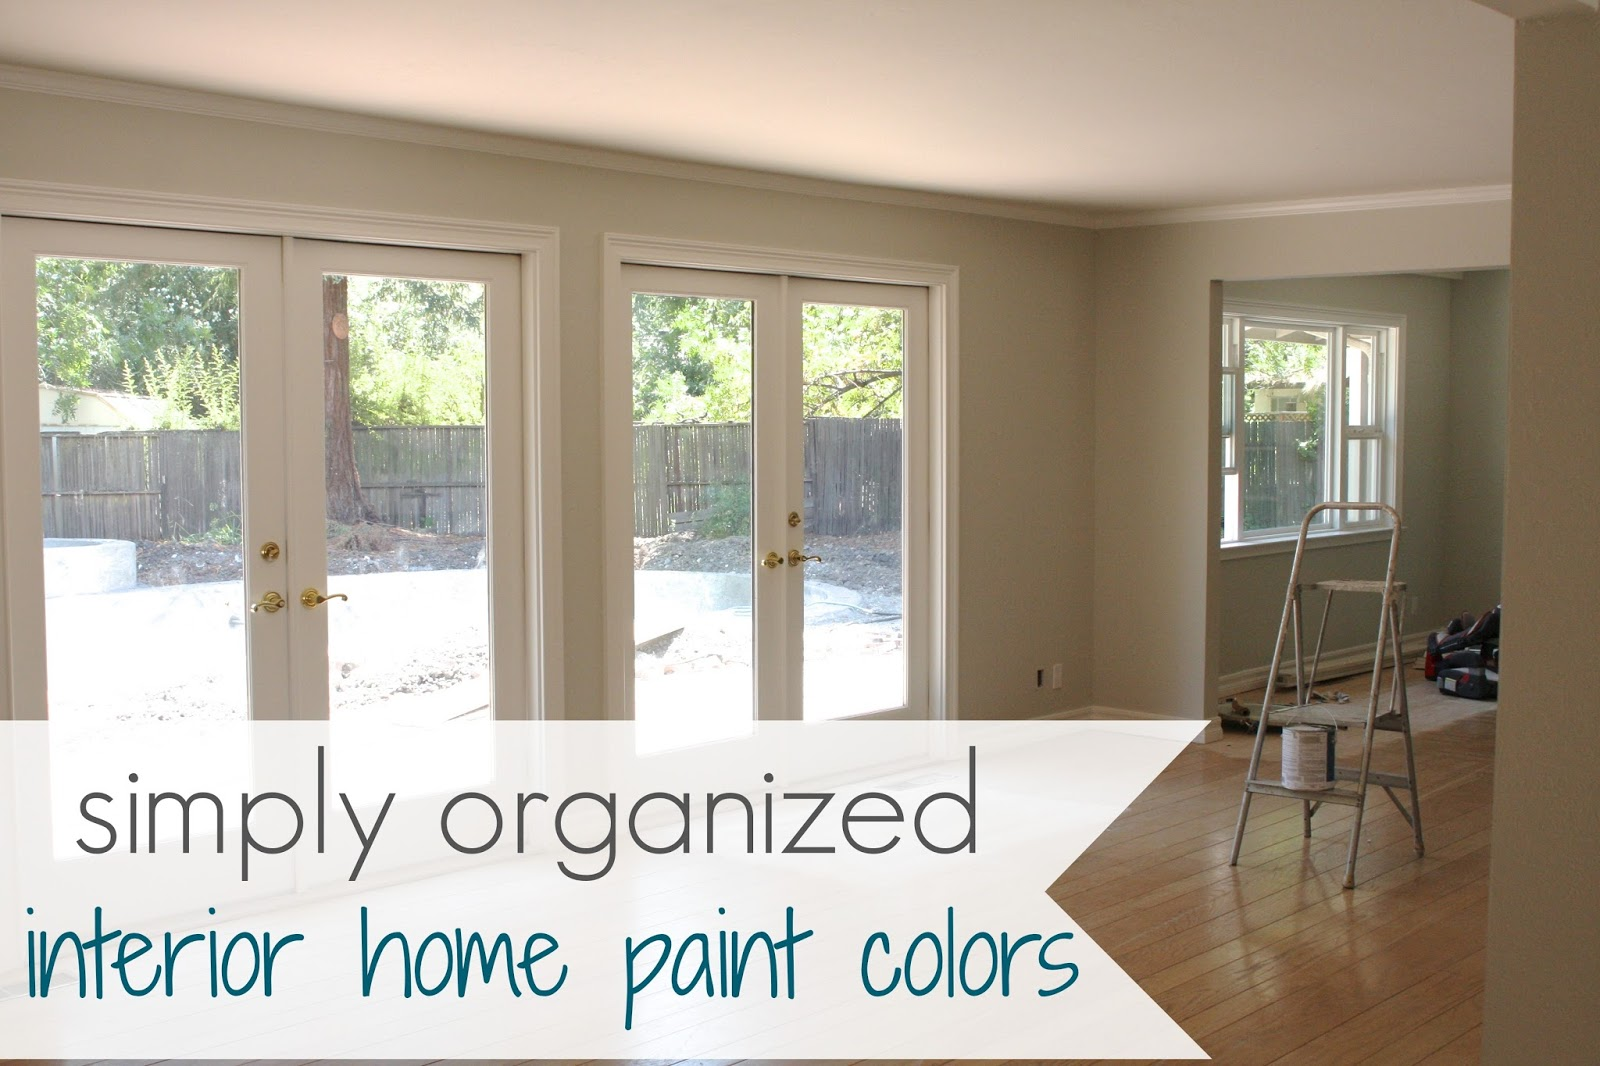 Simply organized my home interior paint color palate for My home interior